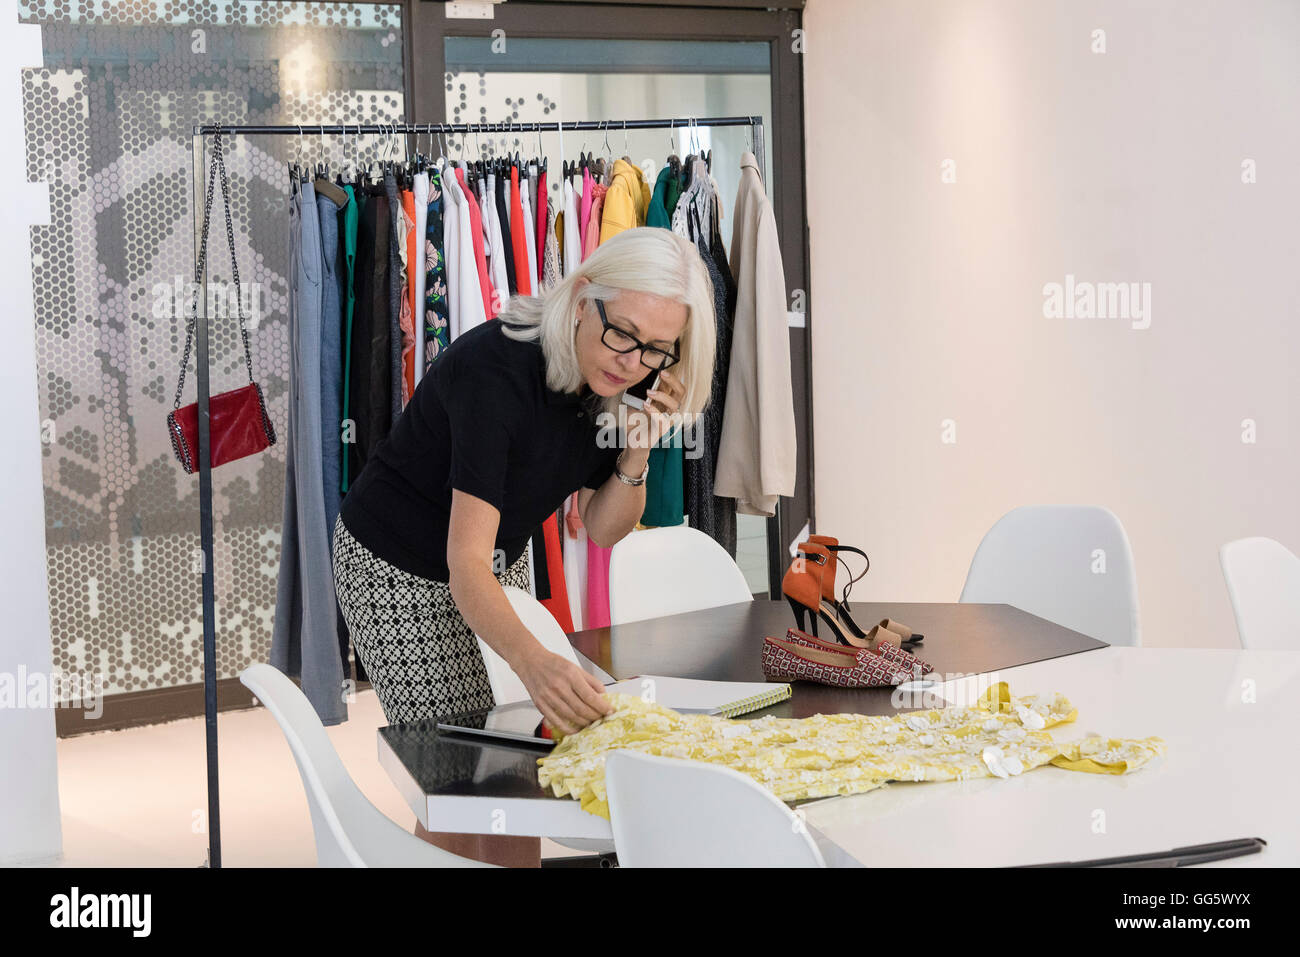 Fashion designer working in her studio - Stock Image